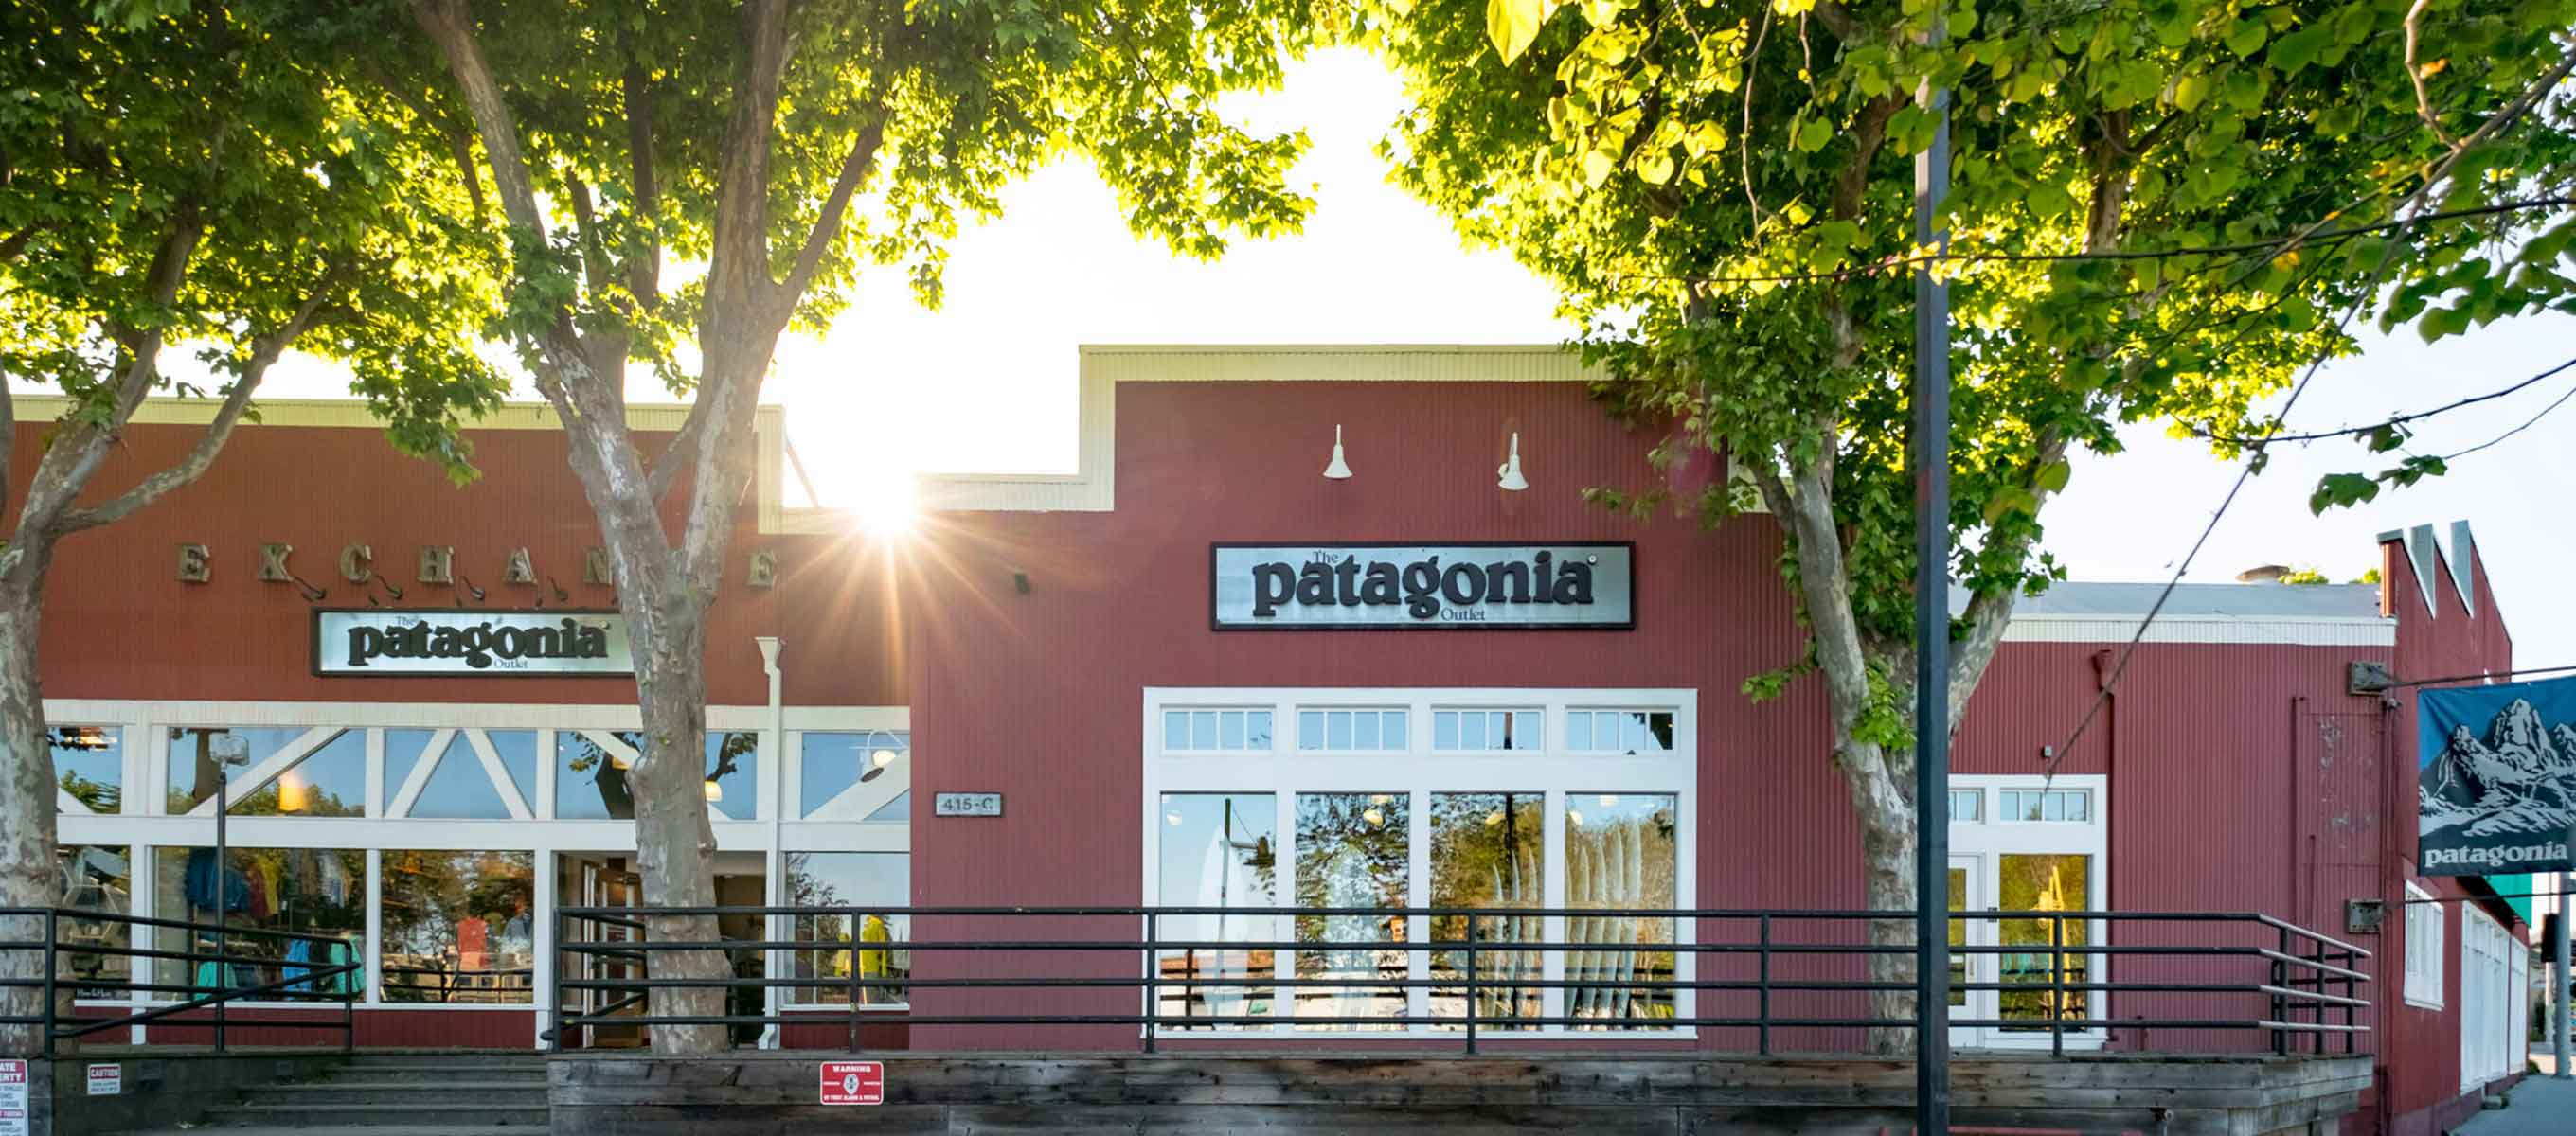 Patagonia Outlet Santa Cruz, CA - Outdoor Clothing Outlet